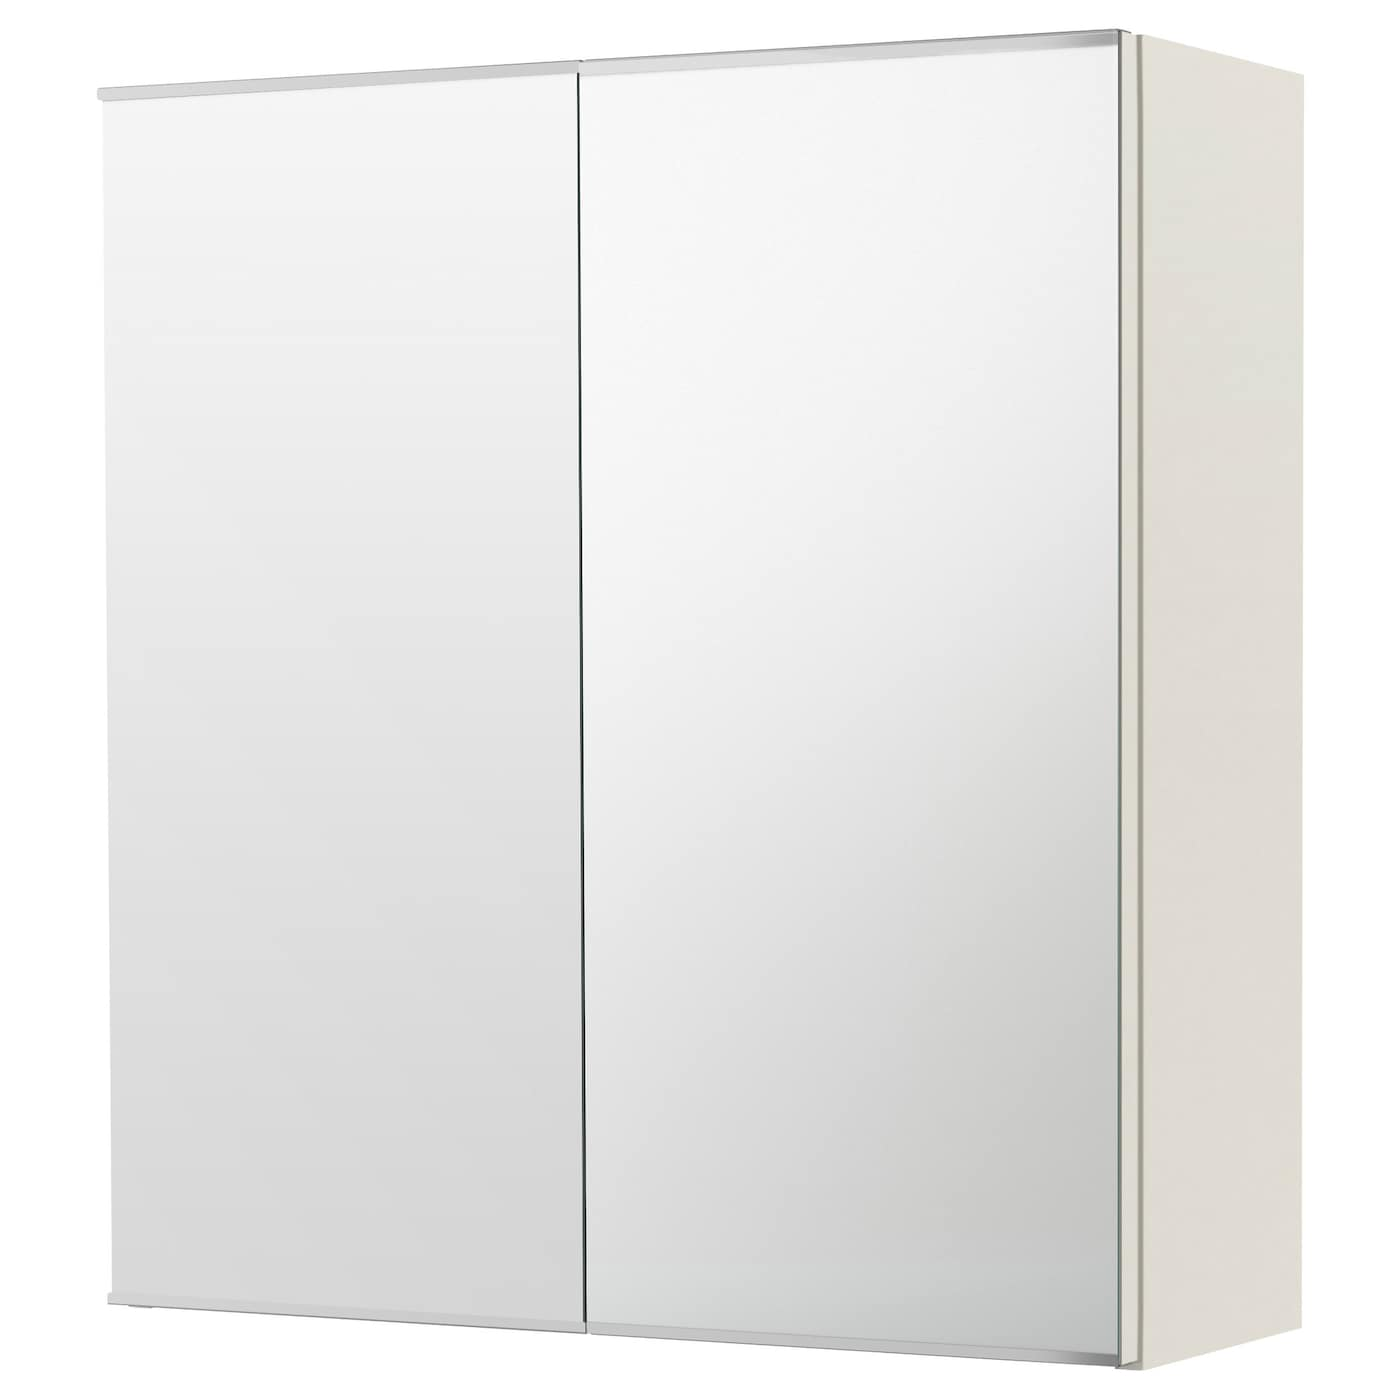 IKEA LILLÅNGEN mirror cabinet with 2 doors